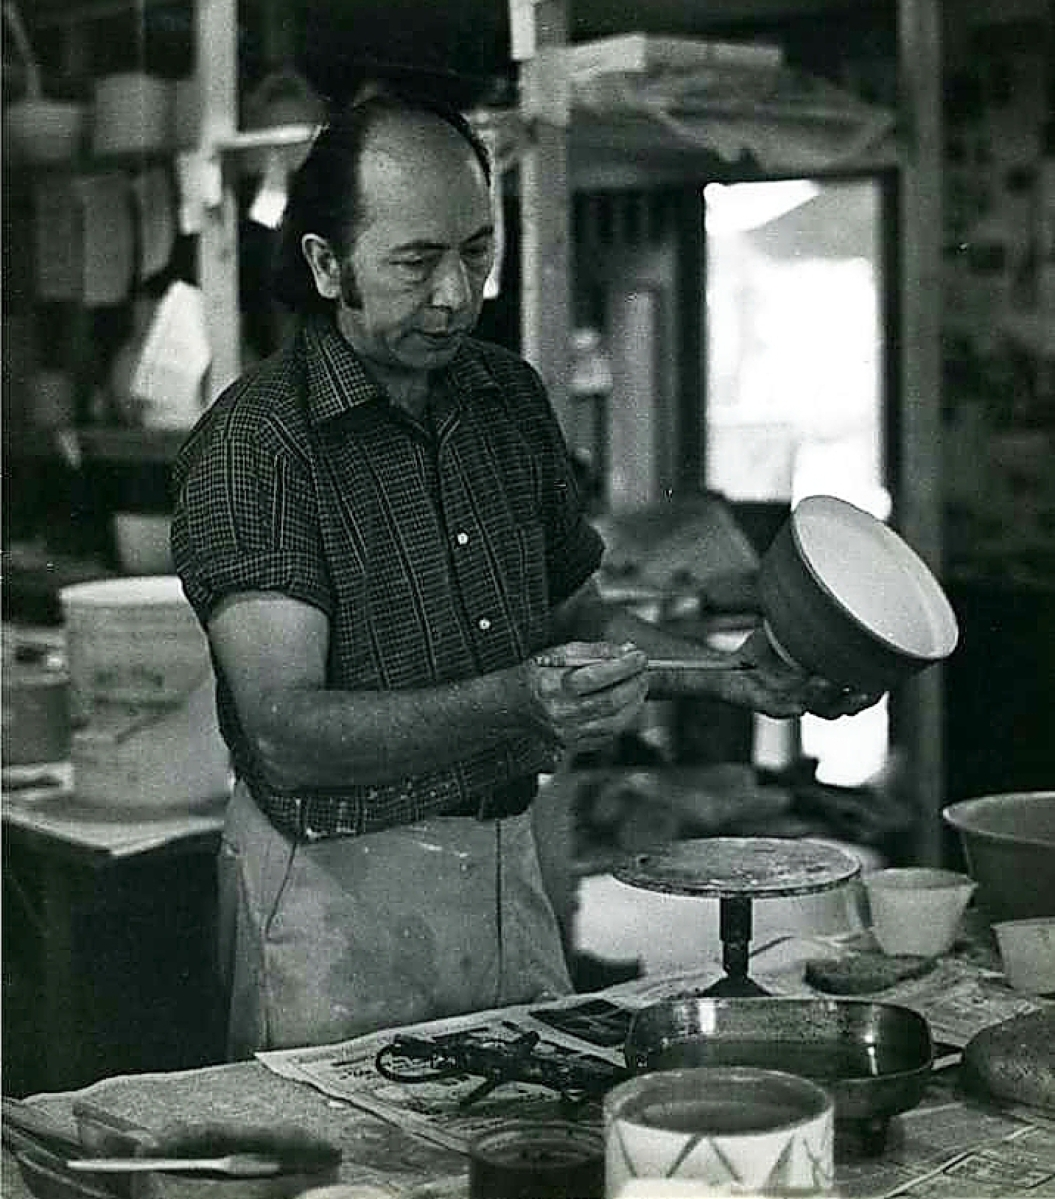 Gerry Williams at work in his studio, decorating a bowl.